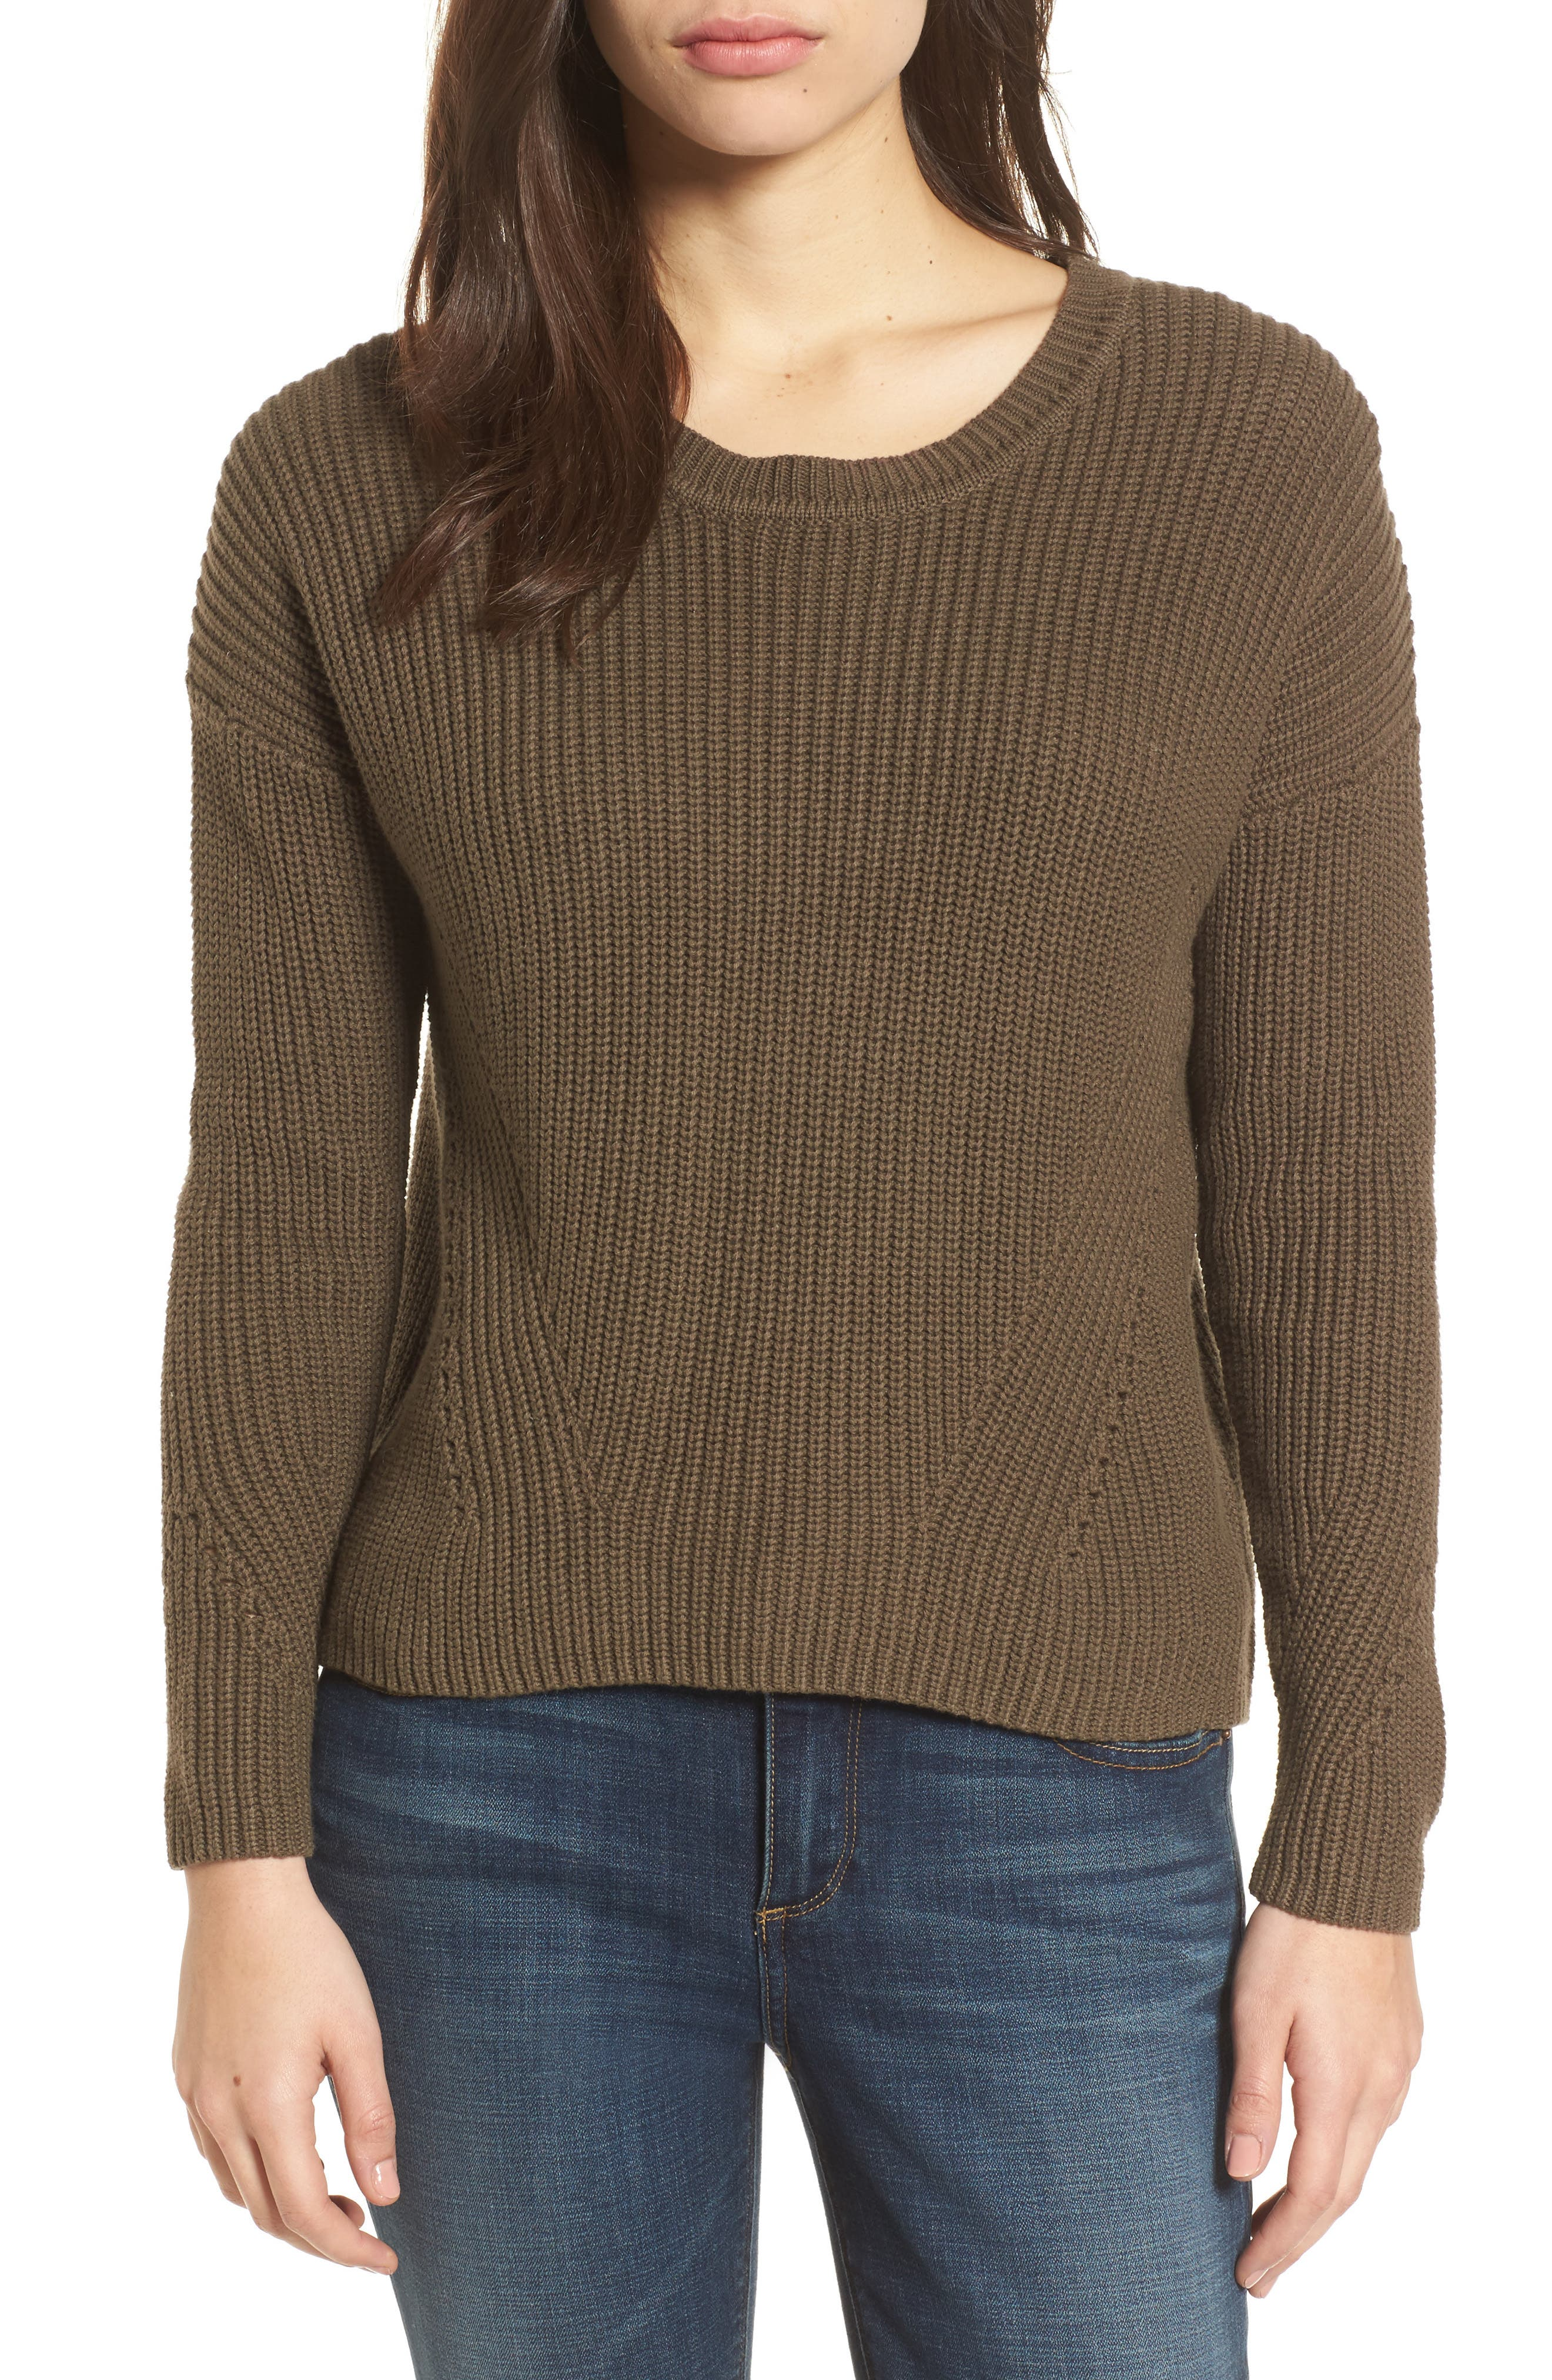 Alternate Image 1 Selected - Lucky Brand Lace-Up Back Sweater